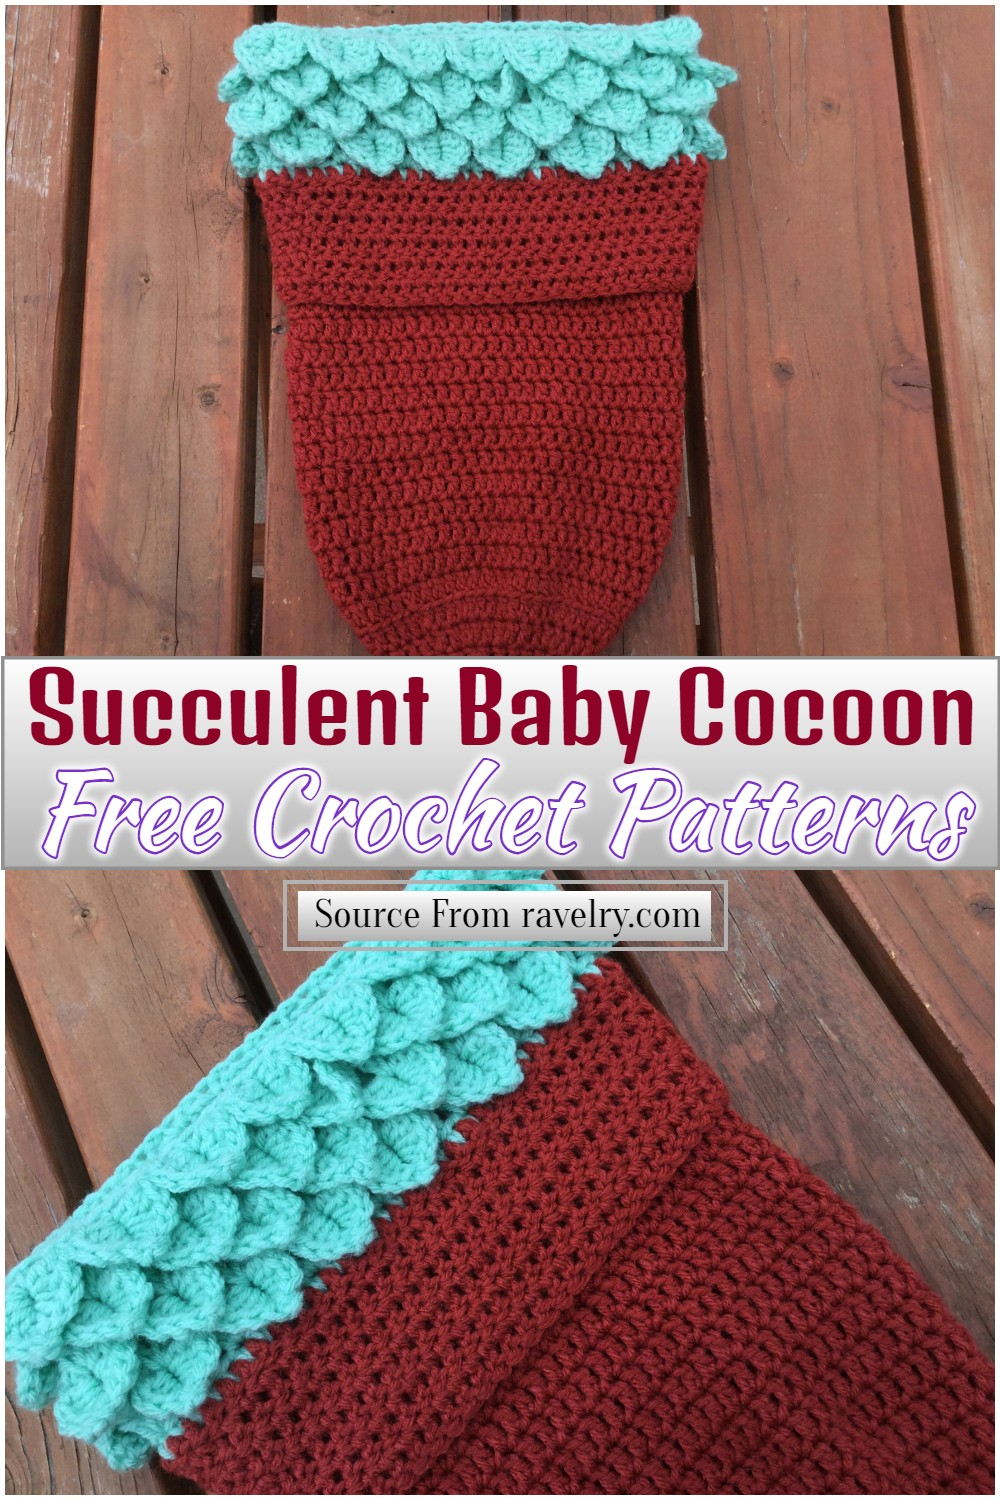 Free Crochet Succulent Baby Cocoon Pattern